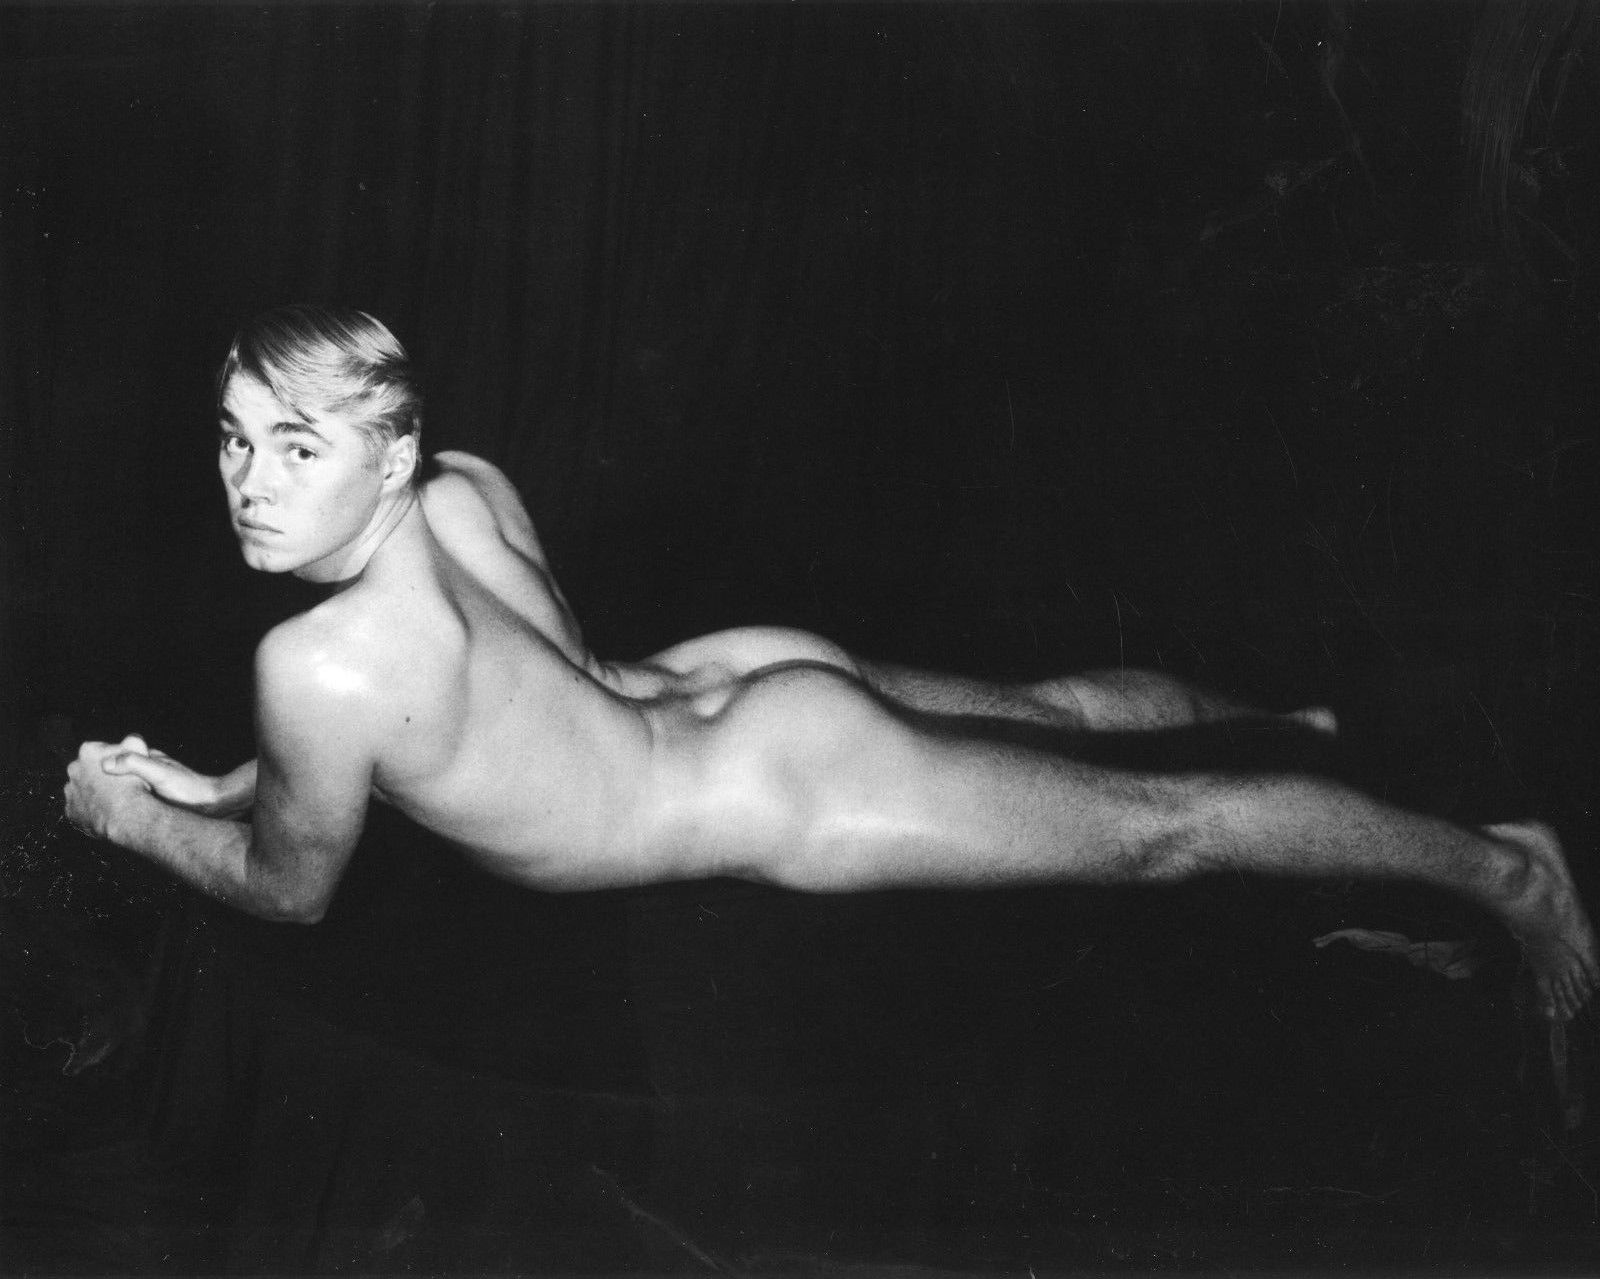 Jan Smithers Nude male models vintage beefcake: dennis cole photographed